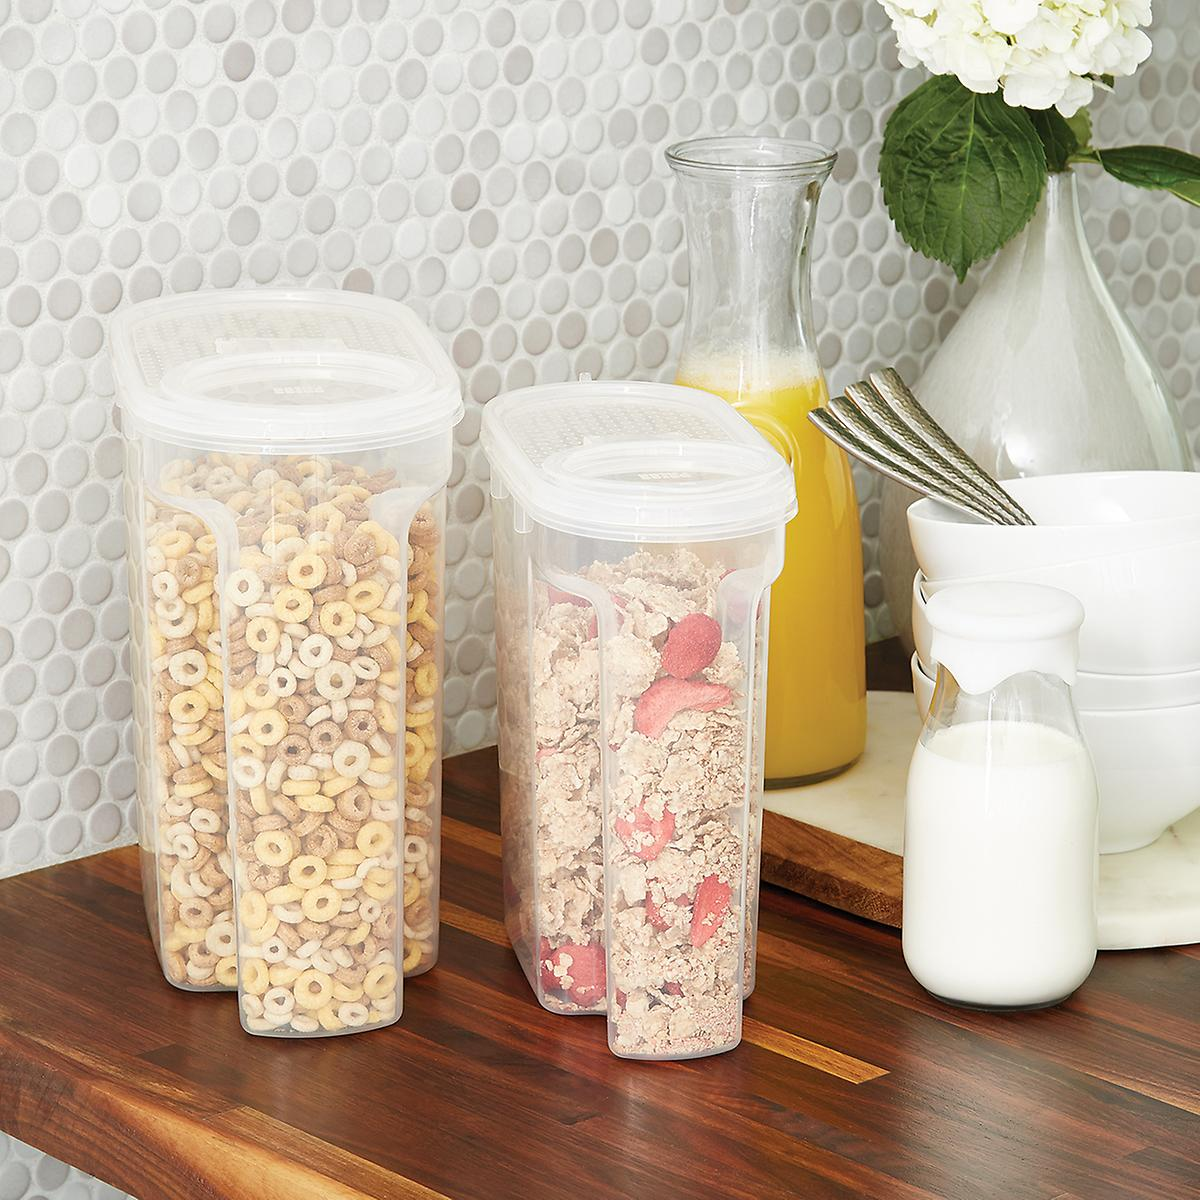 Tellfresh Store 'n Pour Dry Food Dispensers